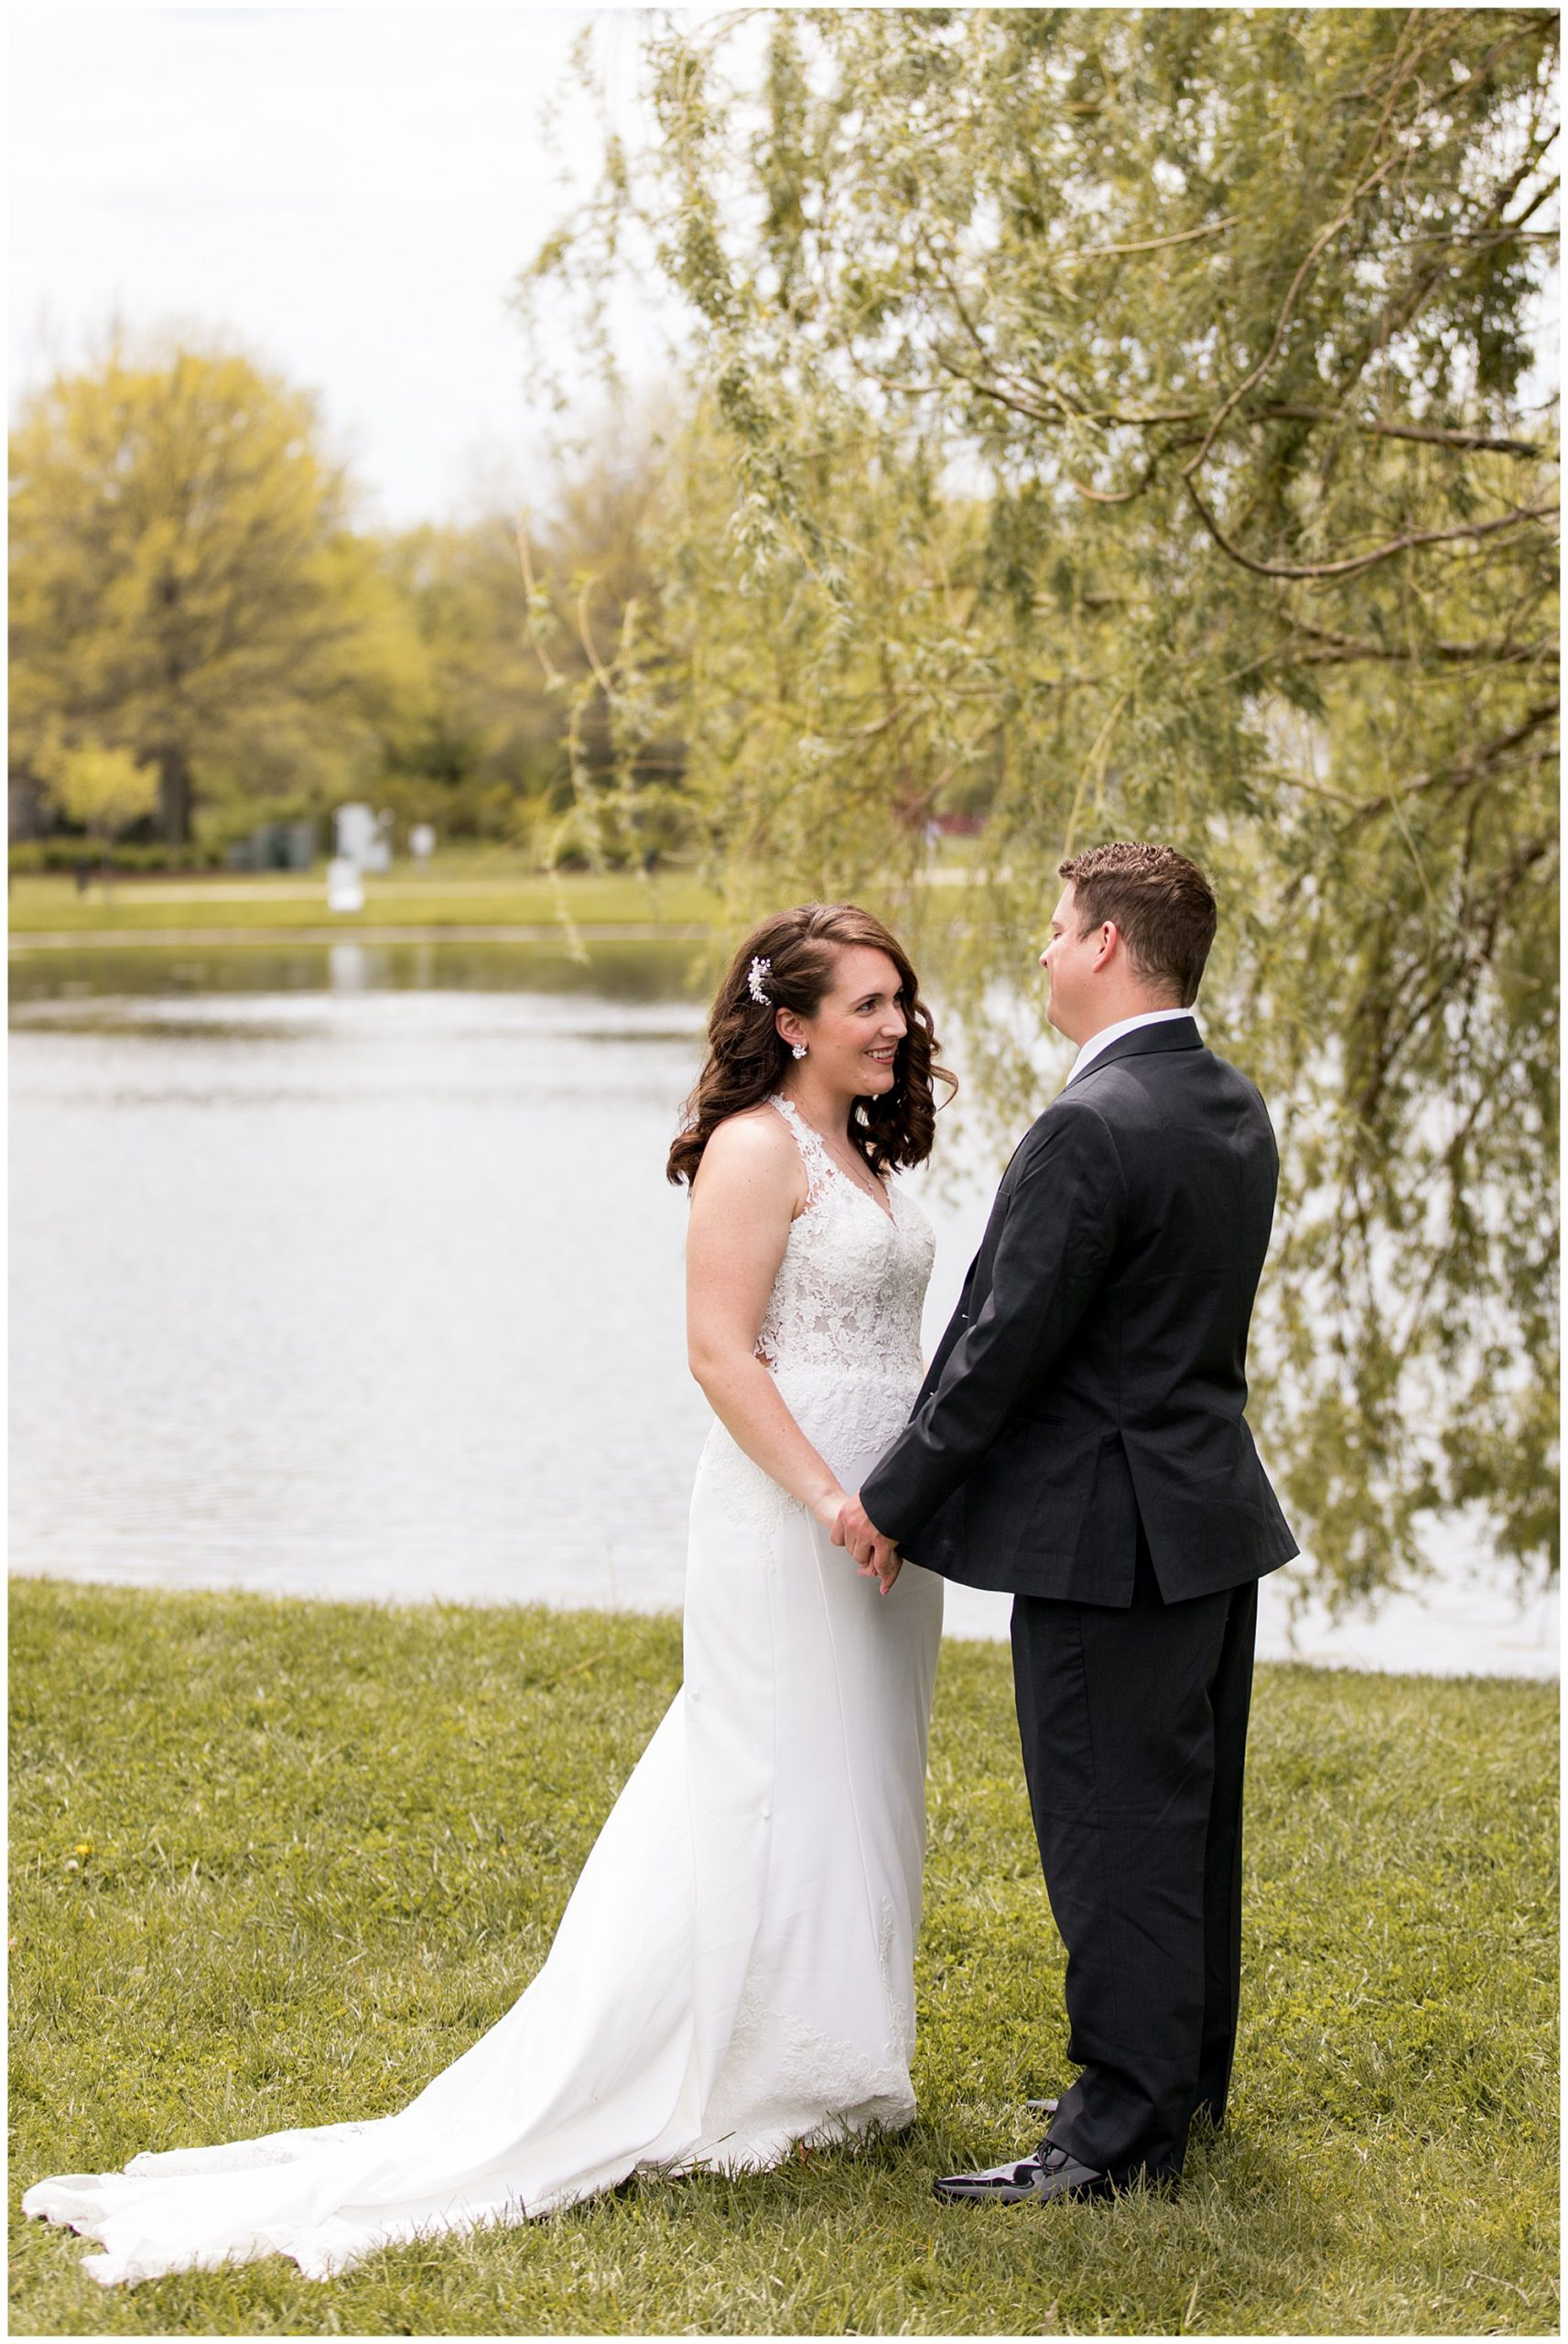 wedding couple first look at Coxhall Gardens in Carmel Indiana